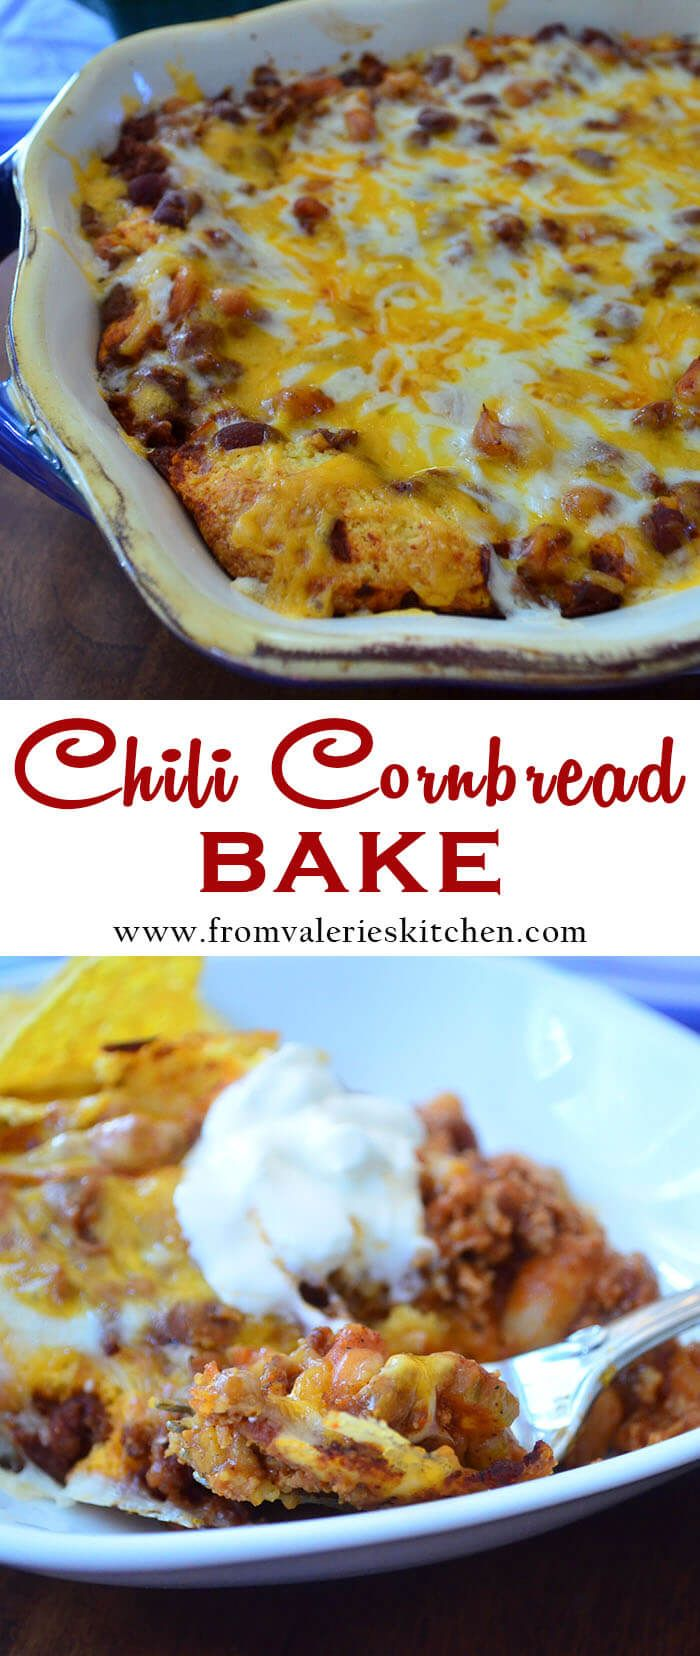 Lean, flavorful chili baked over a layer of cornbread and topped with lots of melted cheese. This Chili Cornbread Bake is the perfect casserole to serve at your next game day gathering or makes for a delicious meal any night of the week.